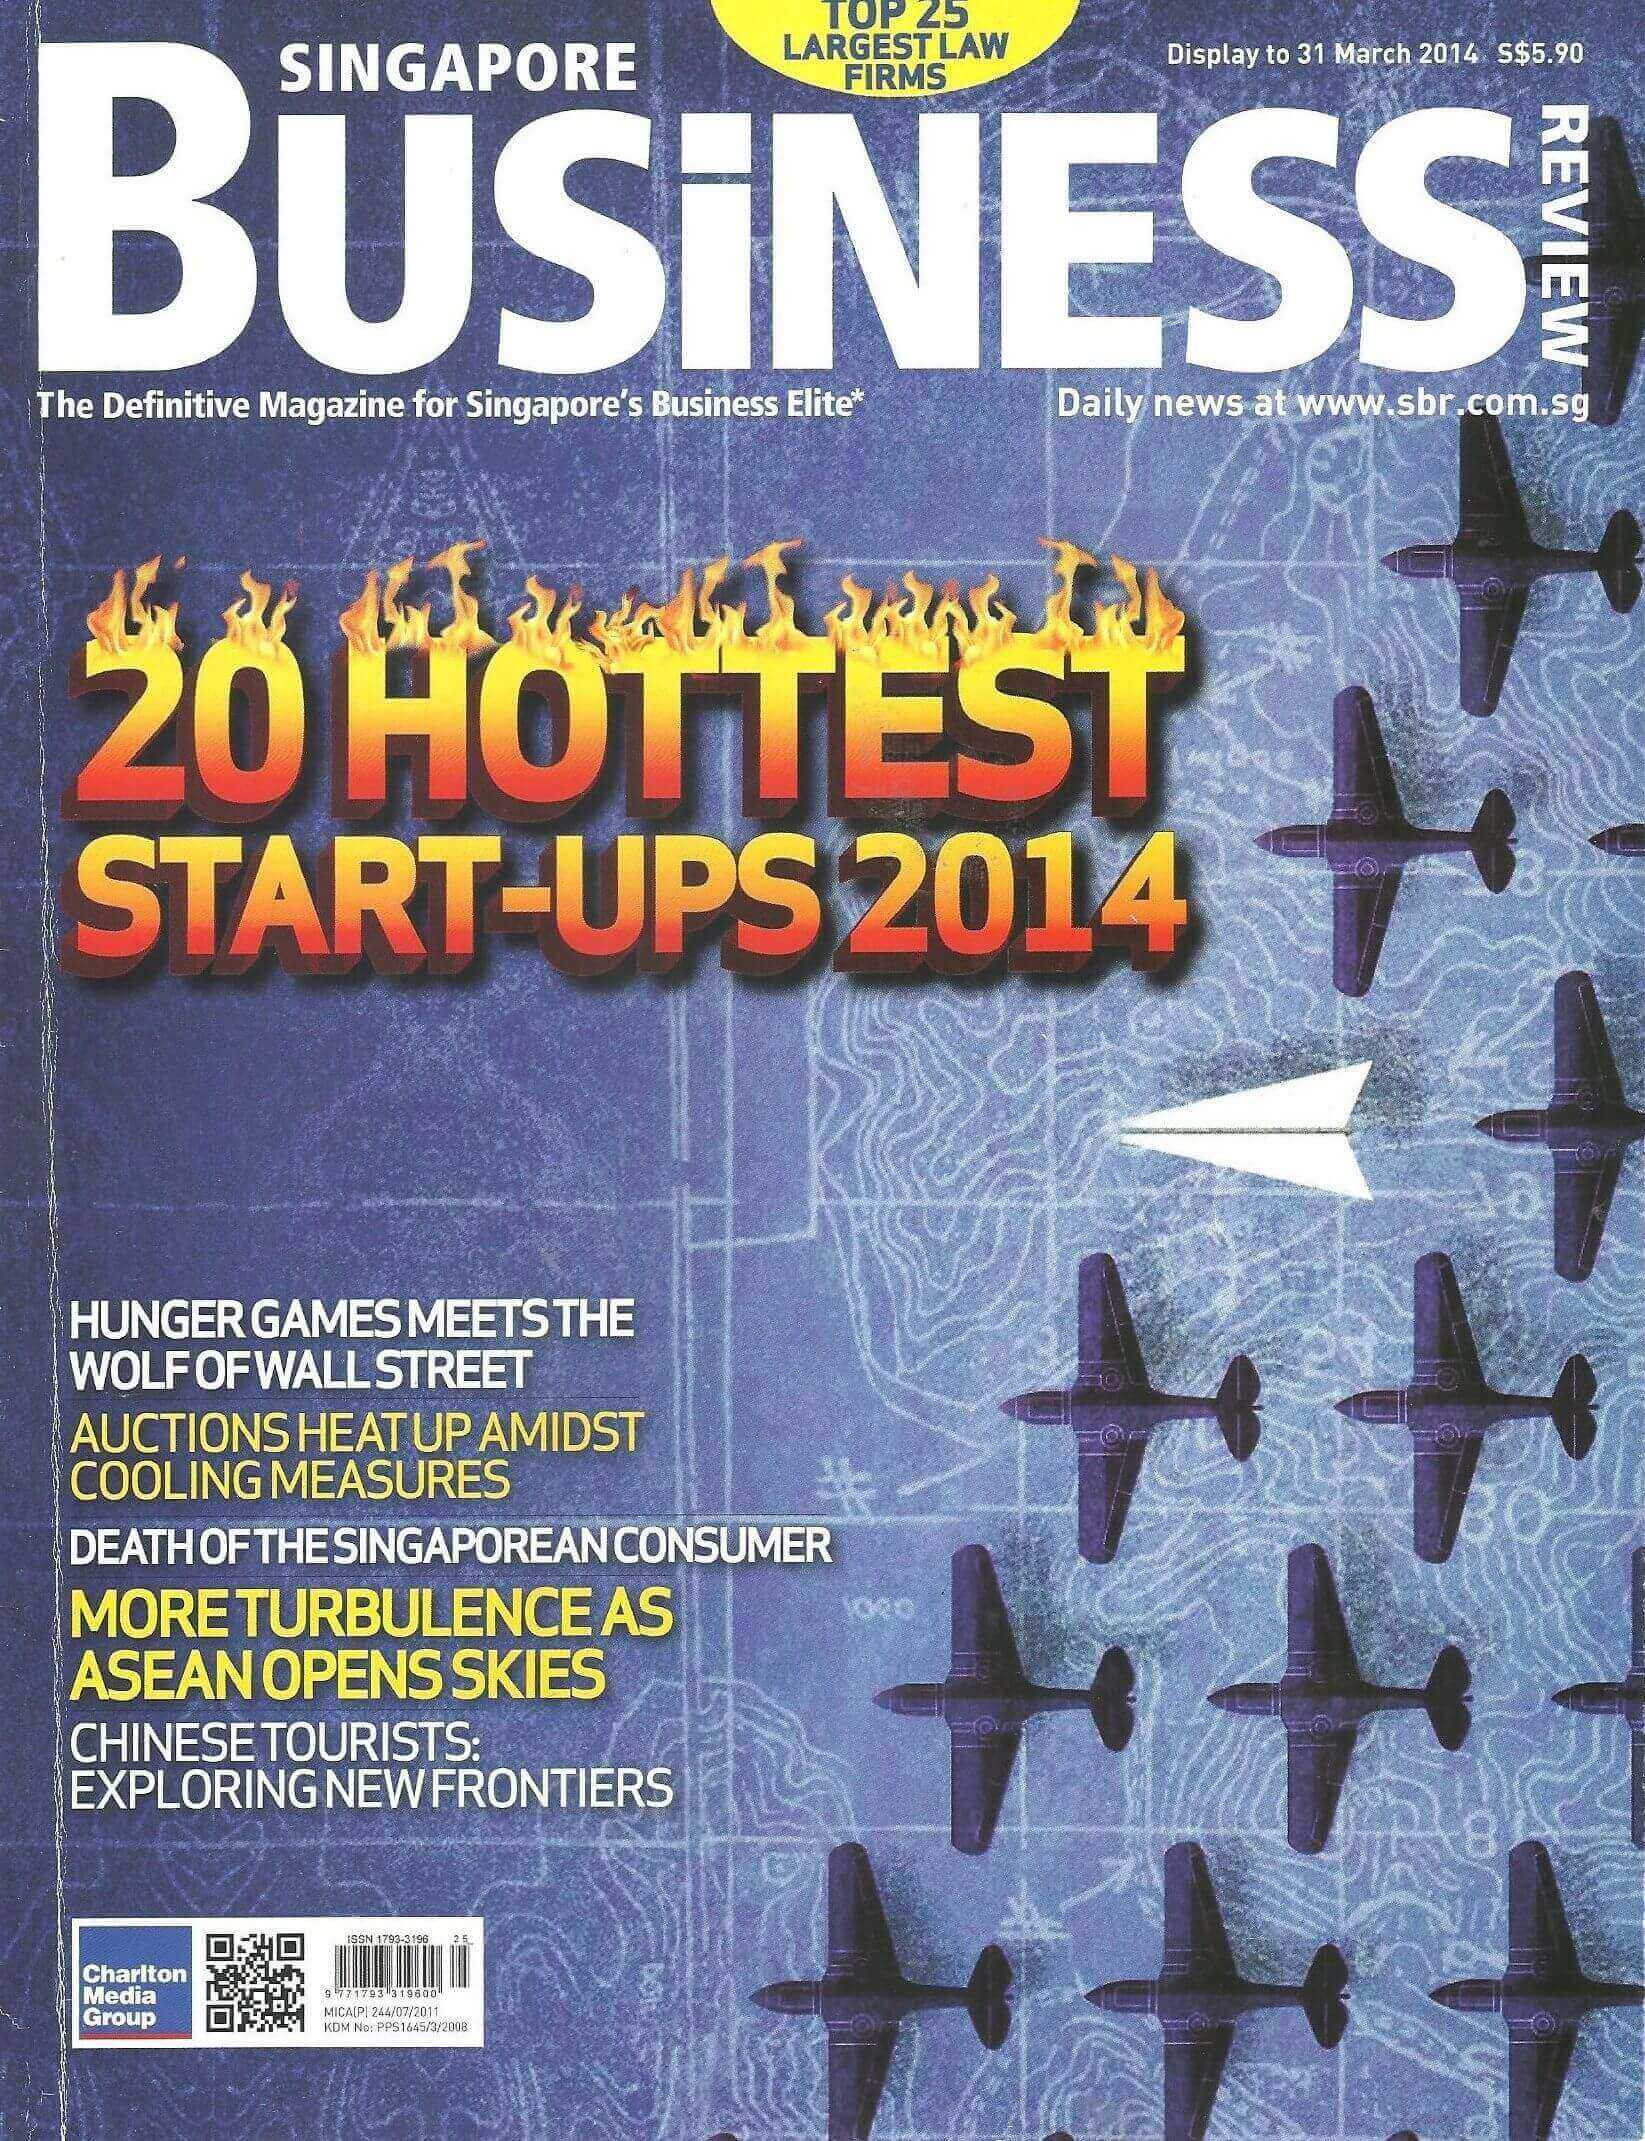 Revista Singapore Business Review, April 2014